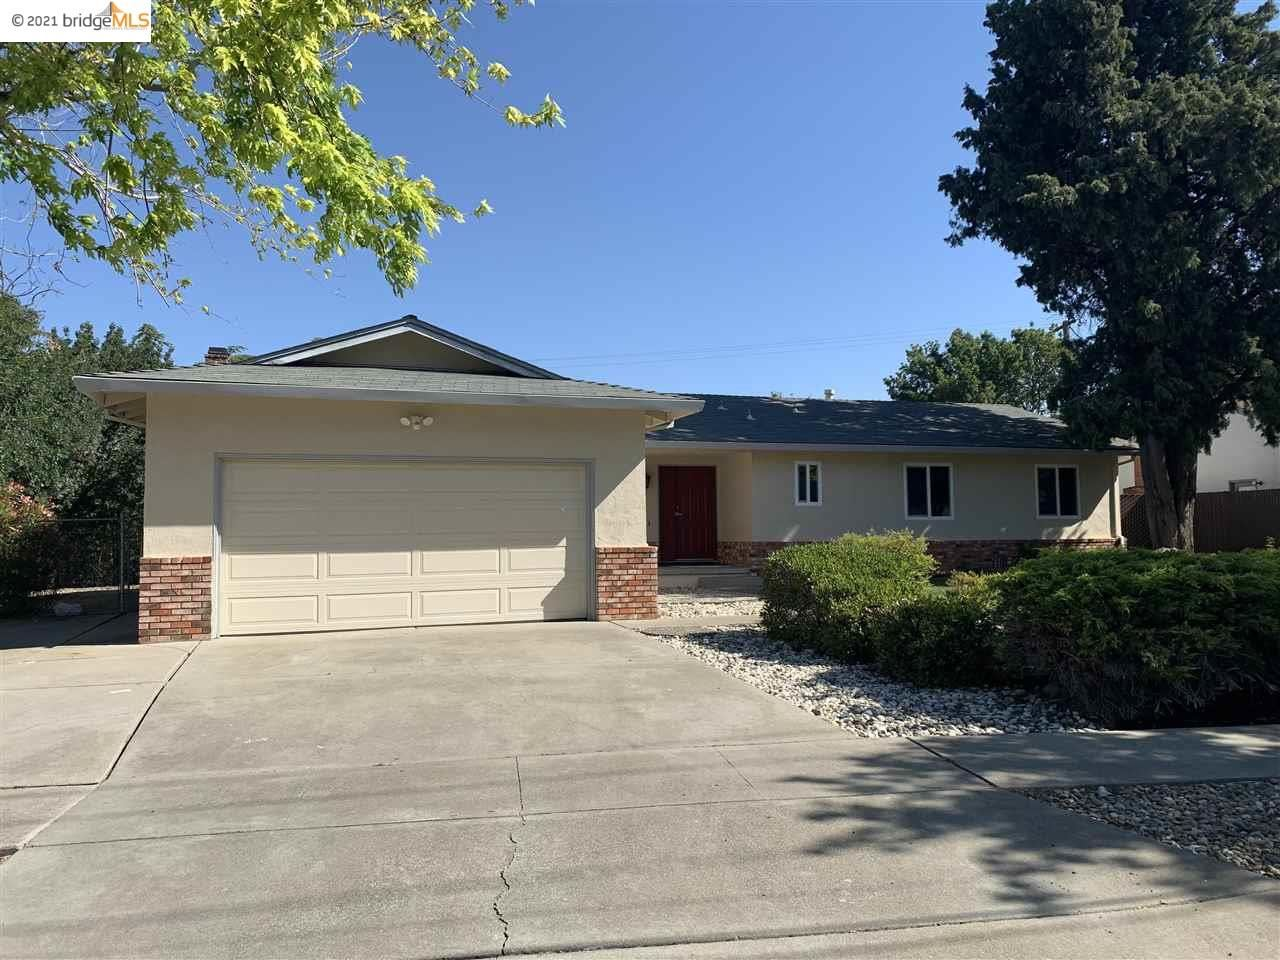 Photo of 101 Ridgerock Dr, ANTIOCH, CA 94509 (MLS # 40949091)